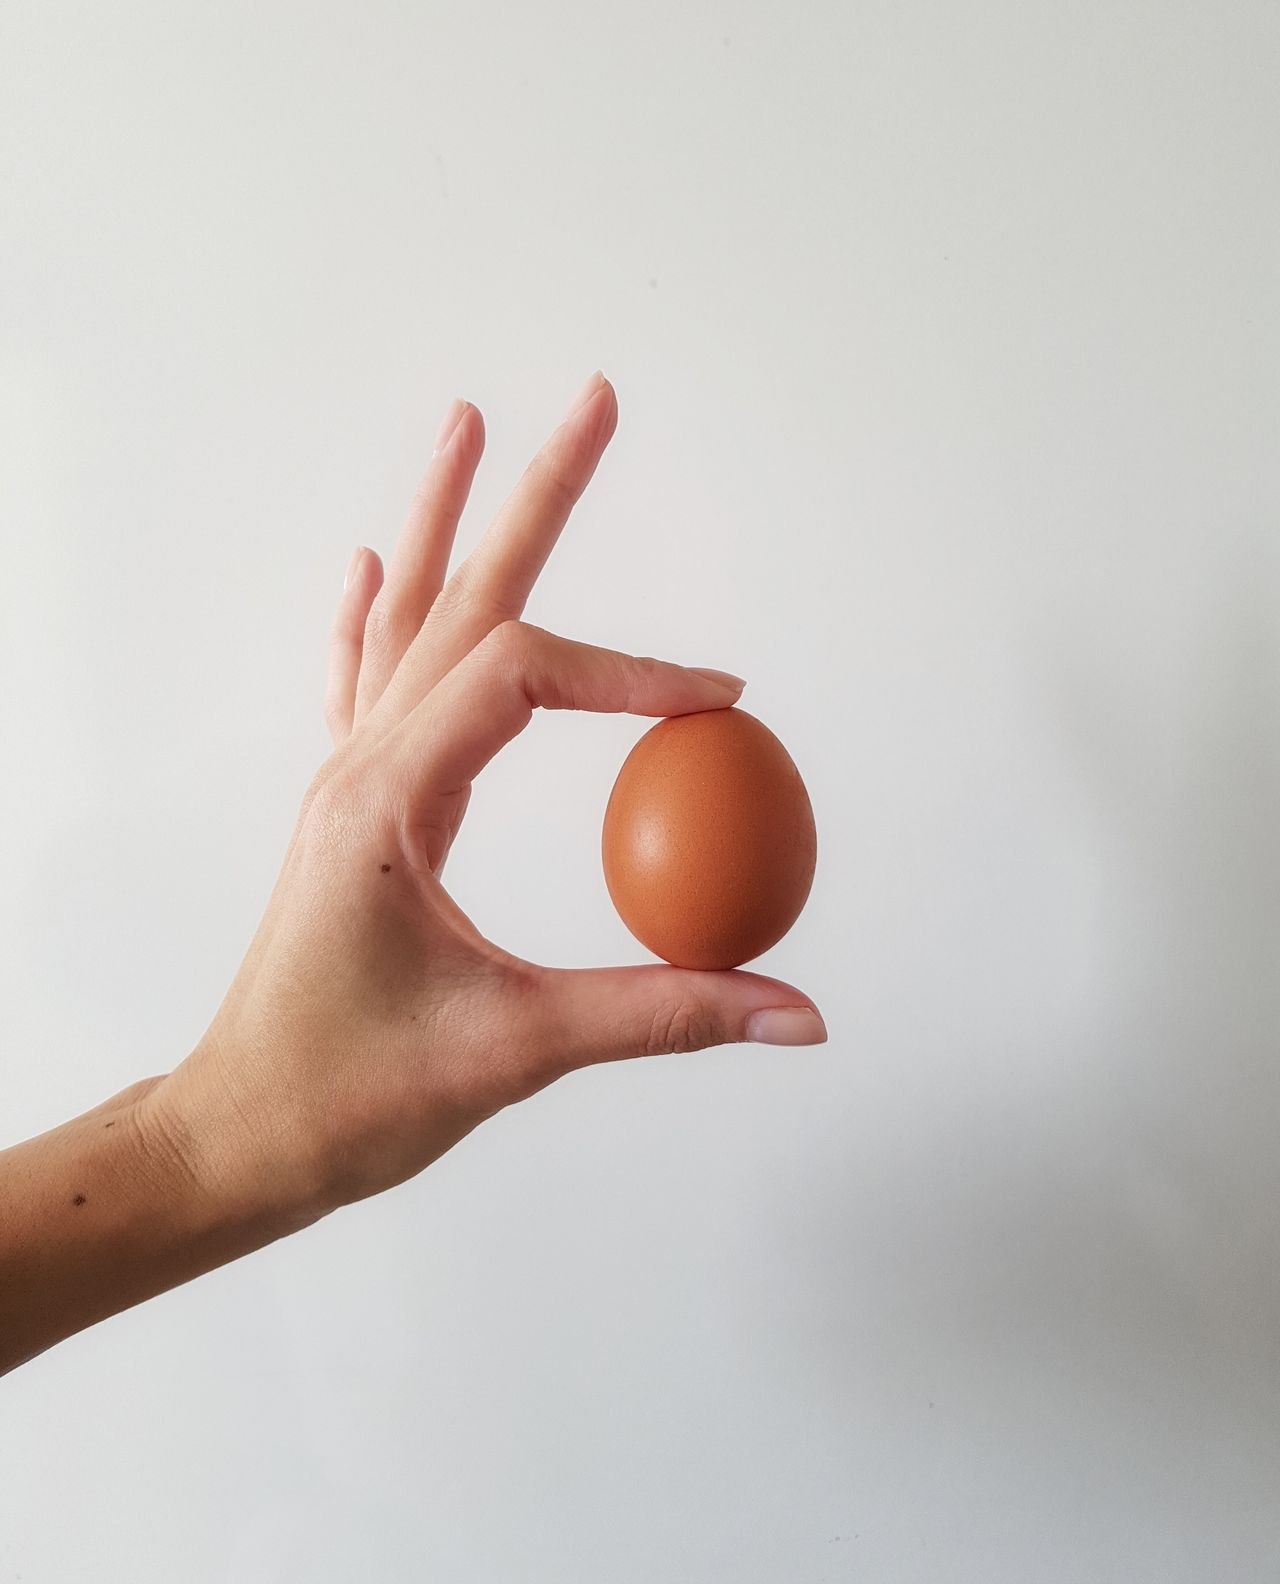 Egg 5/5 Human Body Part Human Hand Food Close-up Healthy Eating Healthy Lifestyle Freshness White Background Holding Nailpolish Cropped Female Hand Studio Shot Egg Round Objects Shell Cooking With Eggs Protein Sunnyside Up Breakfast Hungry Egg White Fresh Products Human Finger